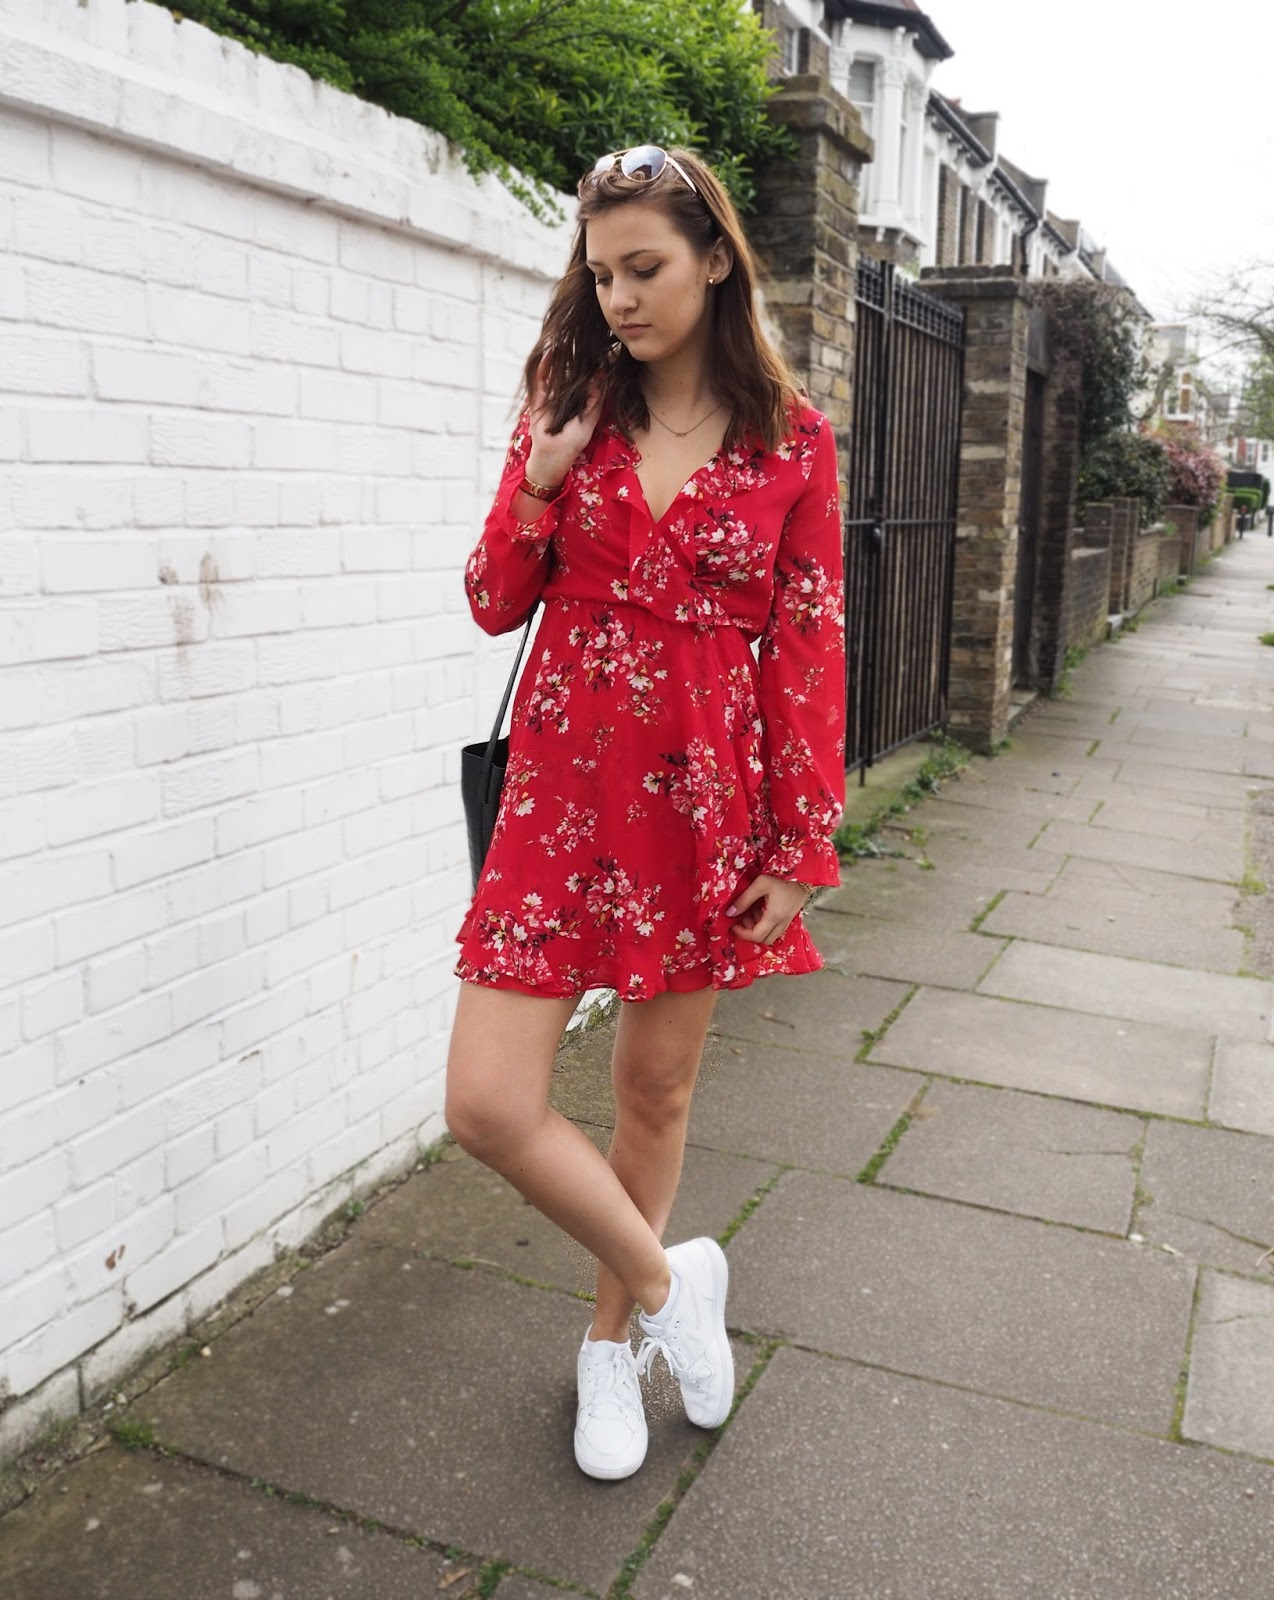 Lauren Rose Style / Lady In Red / Spring Floral Dress / Fashion & Personal Style Blogger London / OOTD WIWT TREND SS17 / H&M